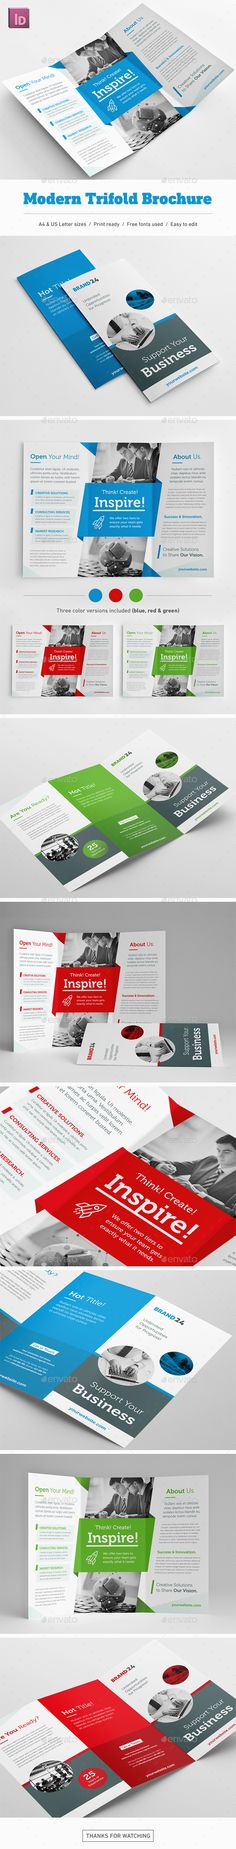 Modern #Trifold #Brochure - Corporate Brochures Download here: https://graphicriver.net/item/modern-trifold-brochure/19755609?ref=alena994